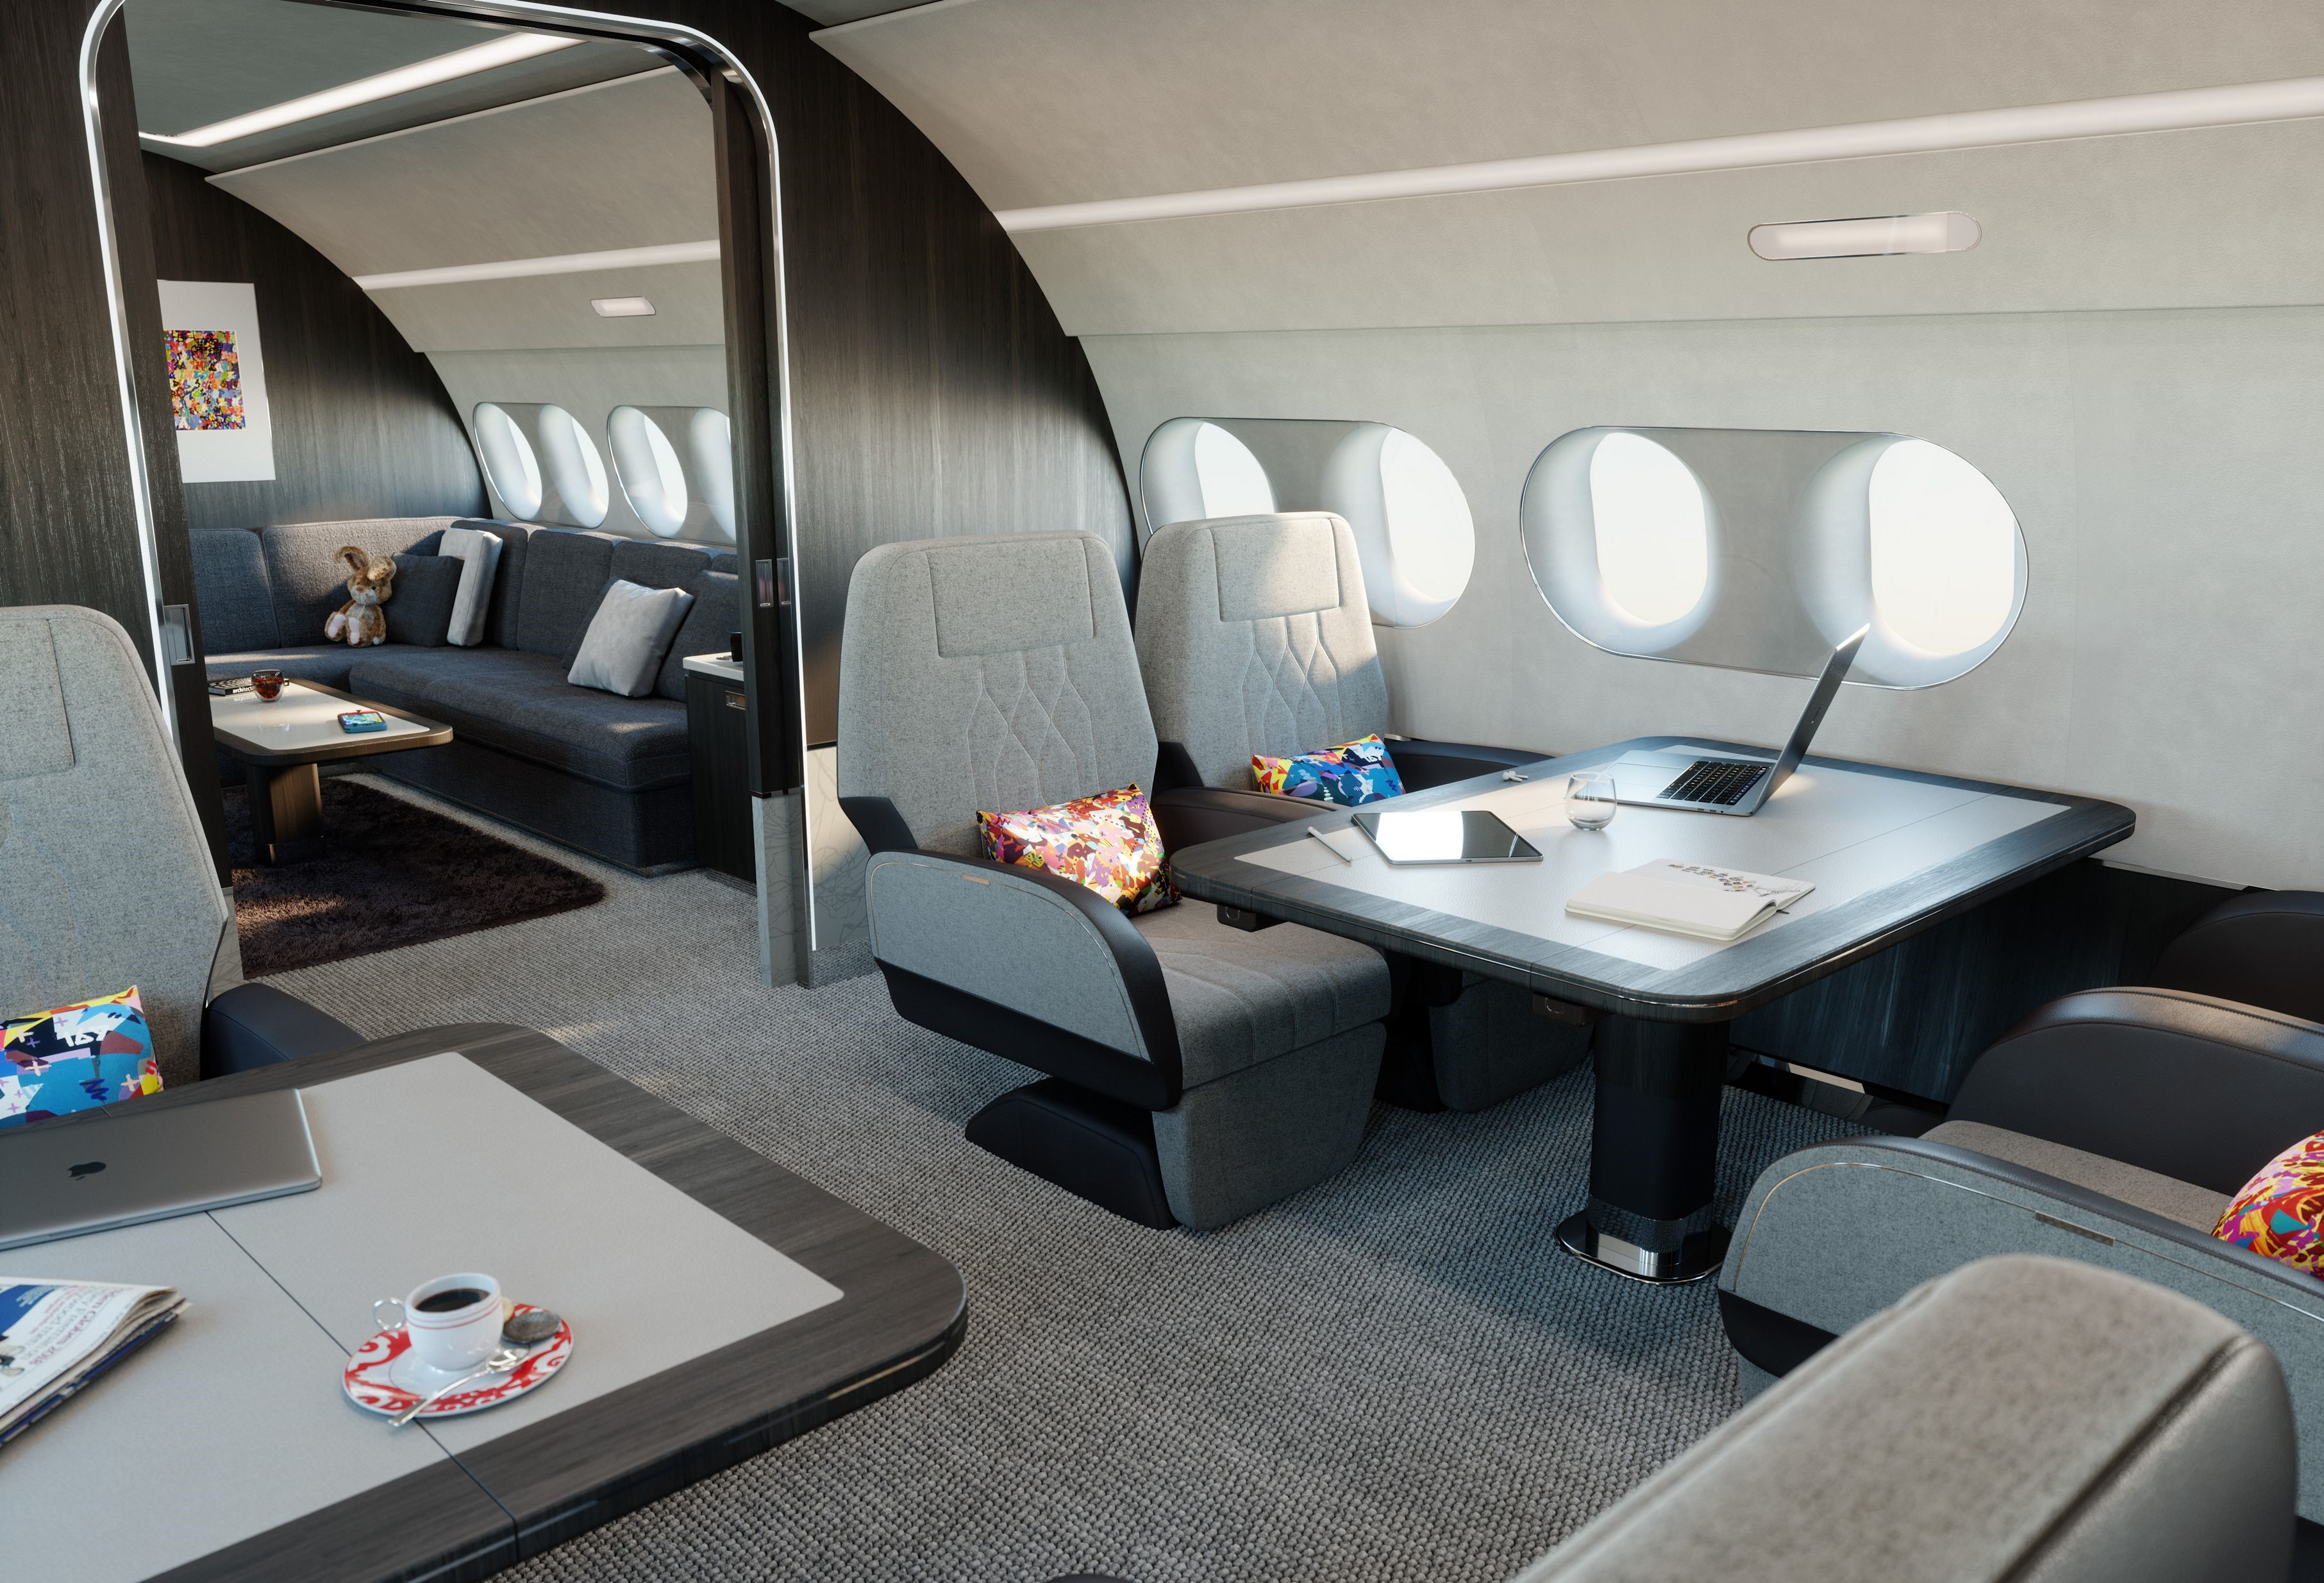 See inside one of the world's top luxury private jets for corporate charter travel, ACJ TwoTwenty takes corporate private jets to the next level of luxury